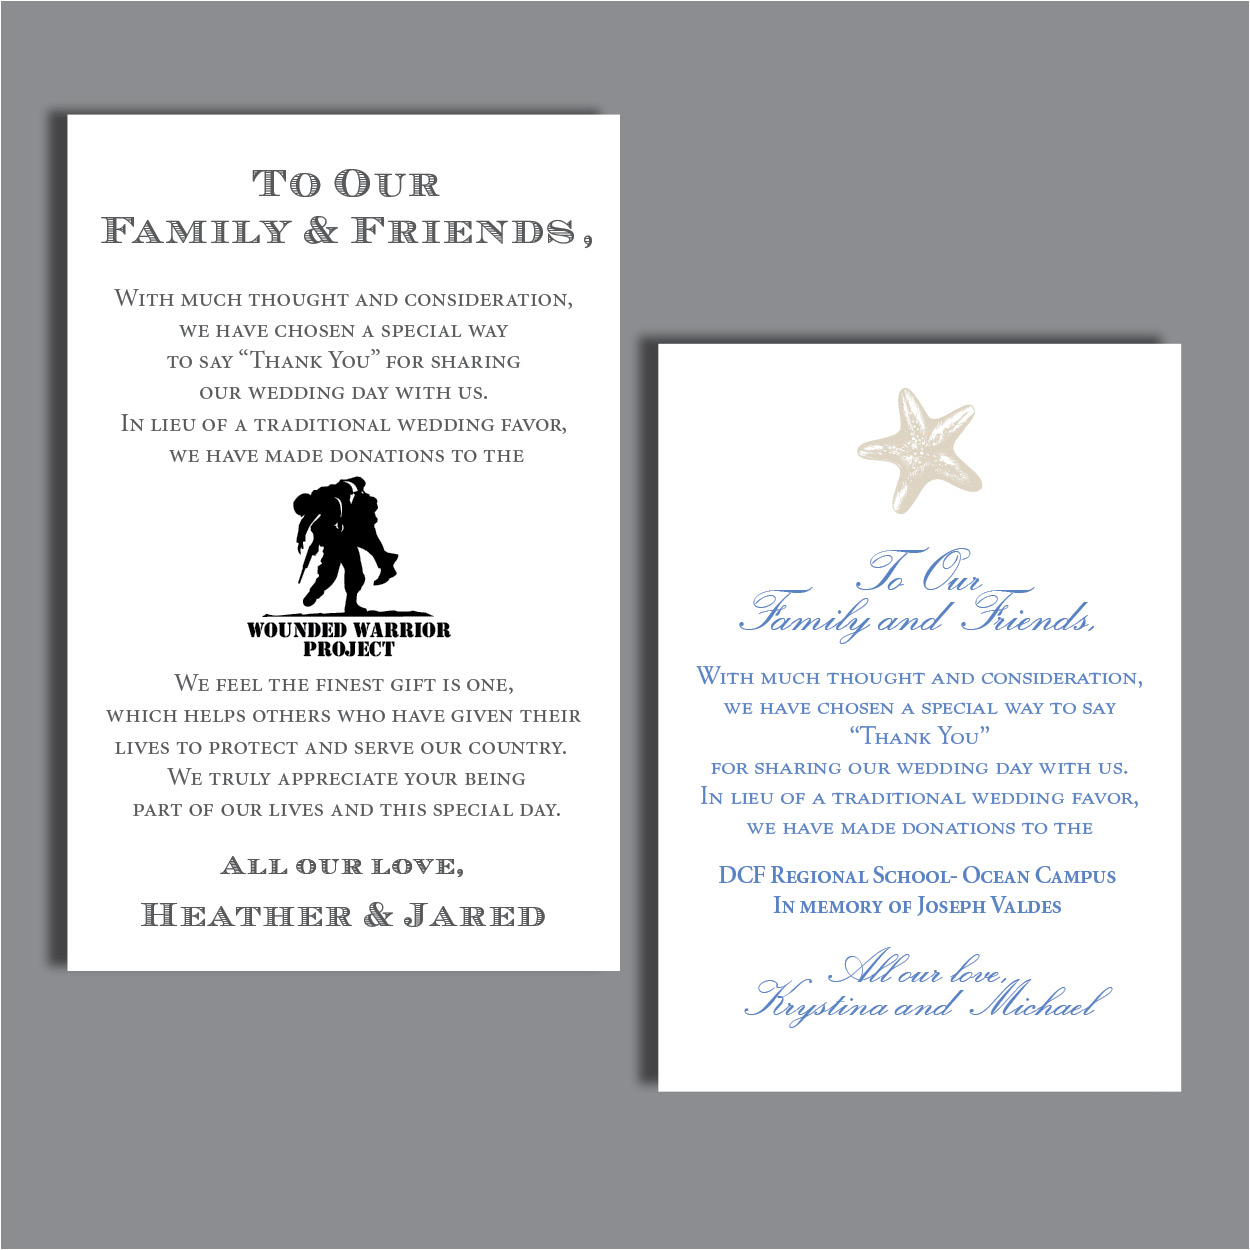 Favor Donation or Thank You Cards — Thinking Paper wedding ...